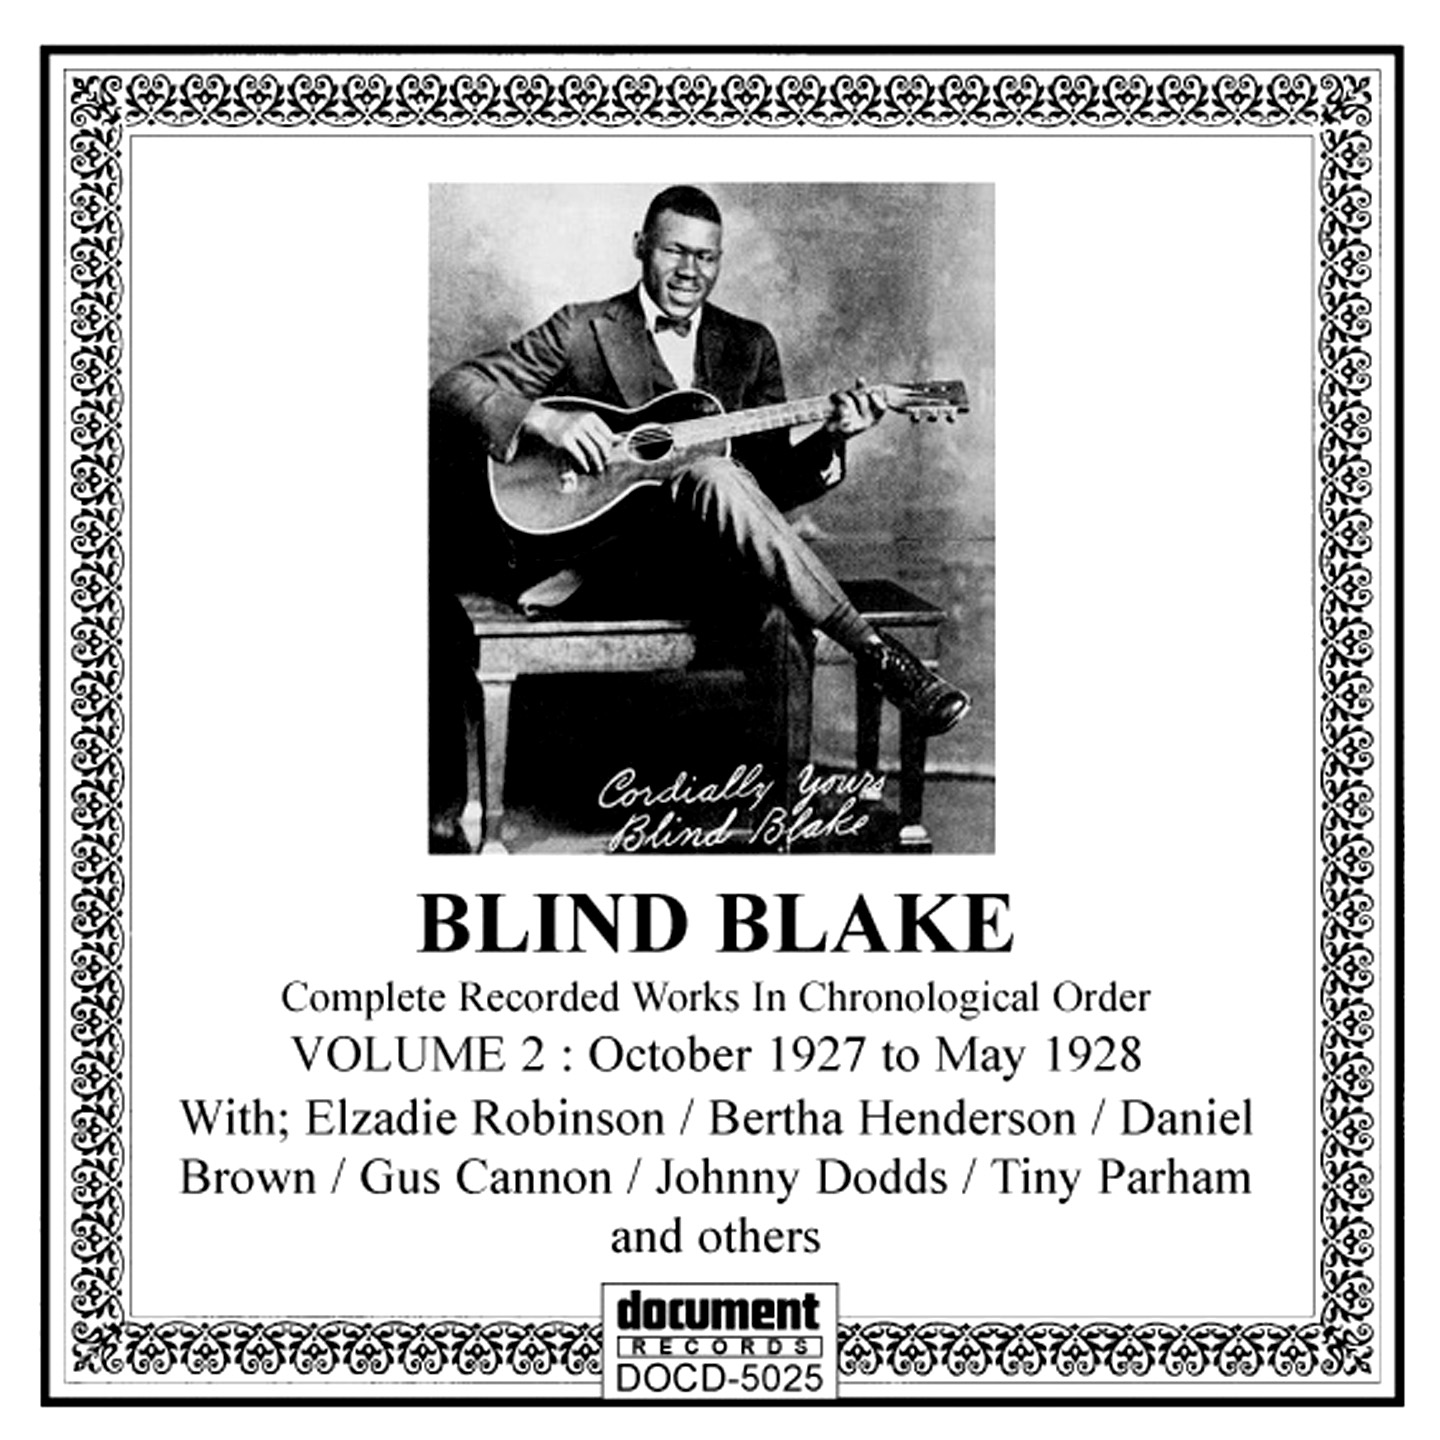 Blind Blake Vol 2 1927 1928 The Document Records Store